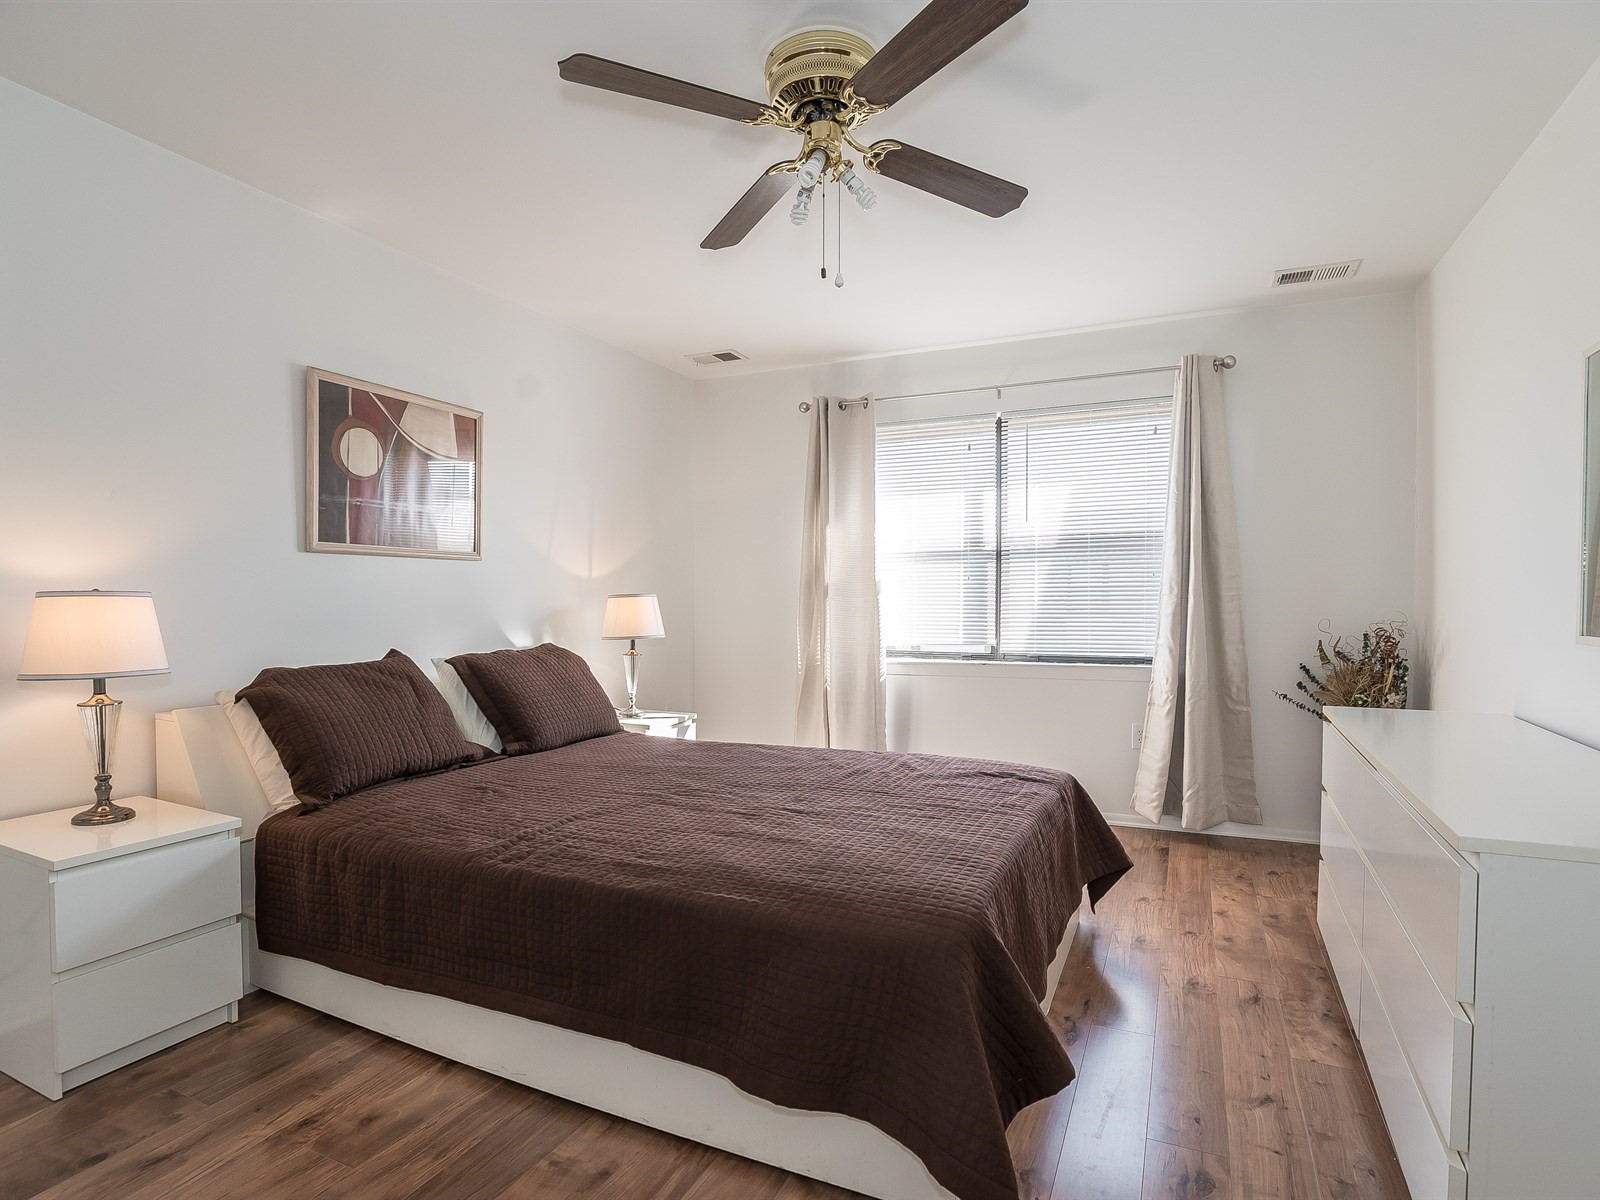 North Brunswick 608 Short Term Housing Master bedroom with large bed, dressers and window